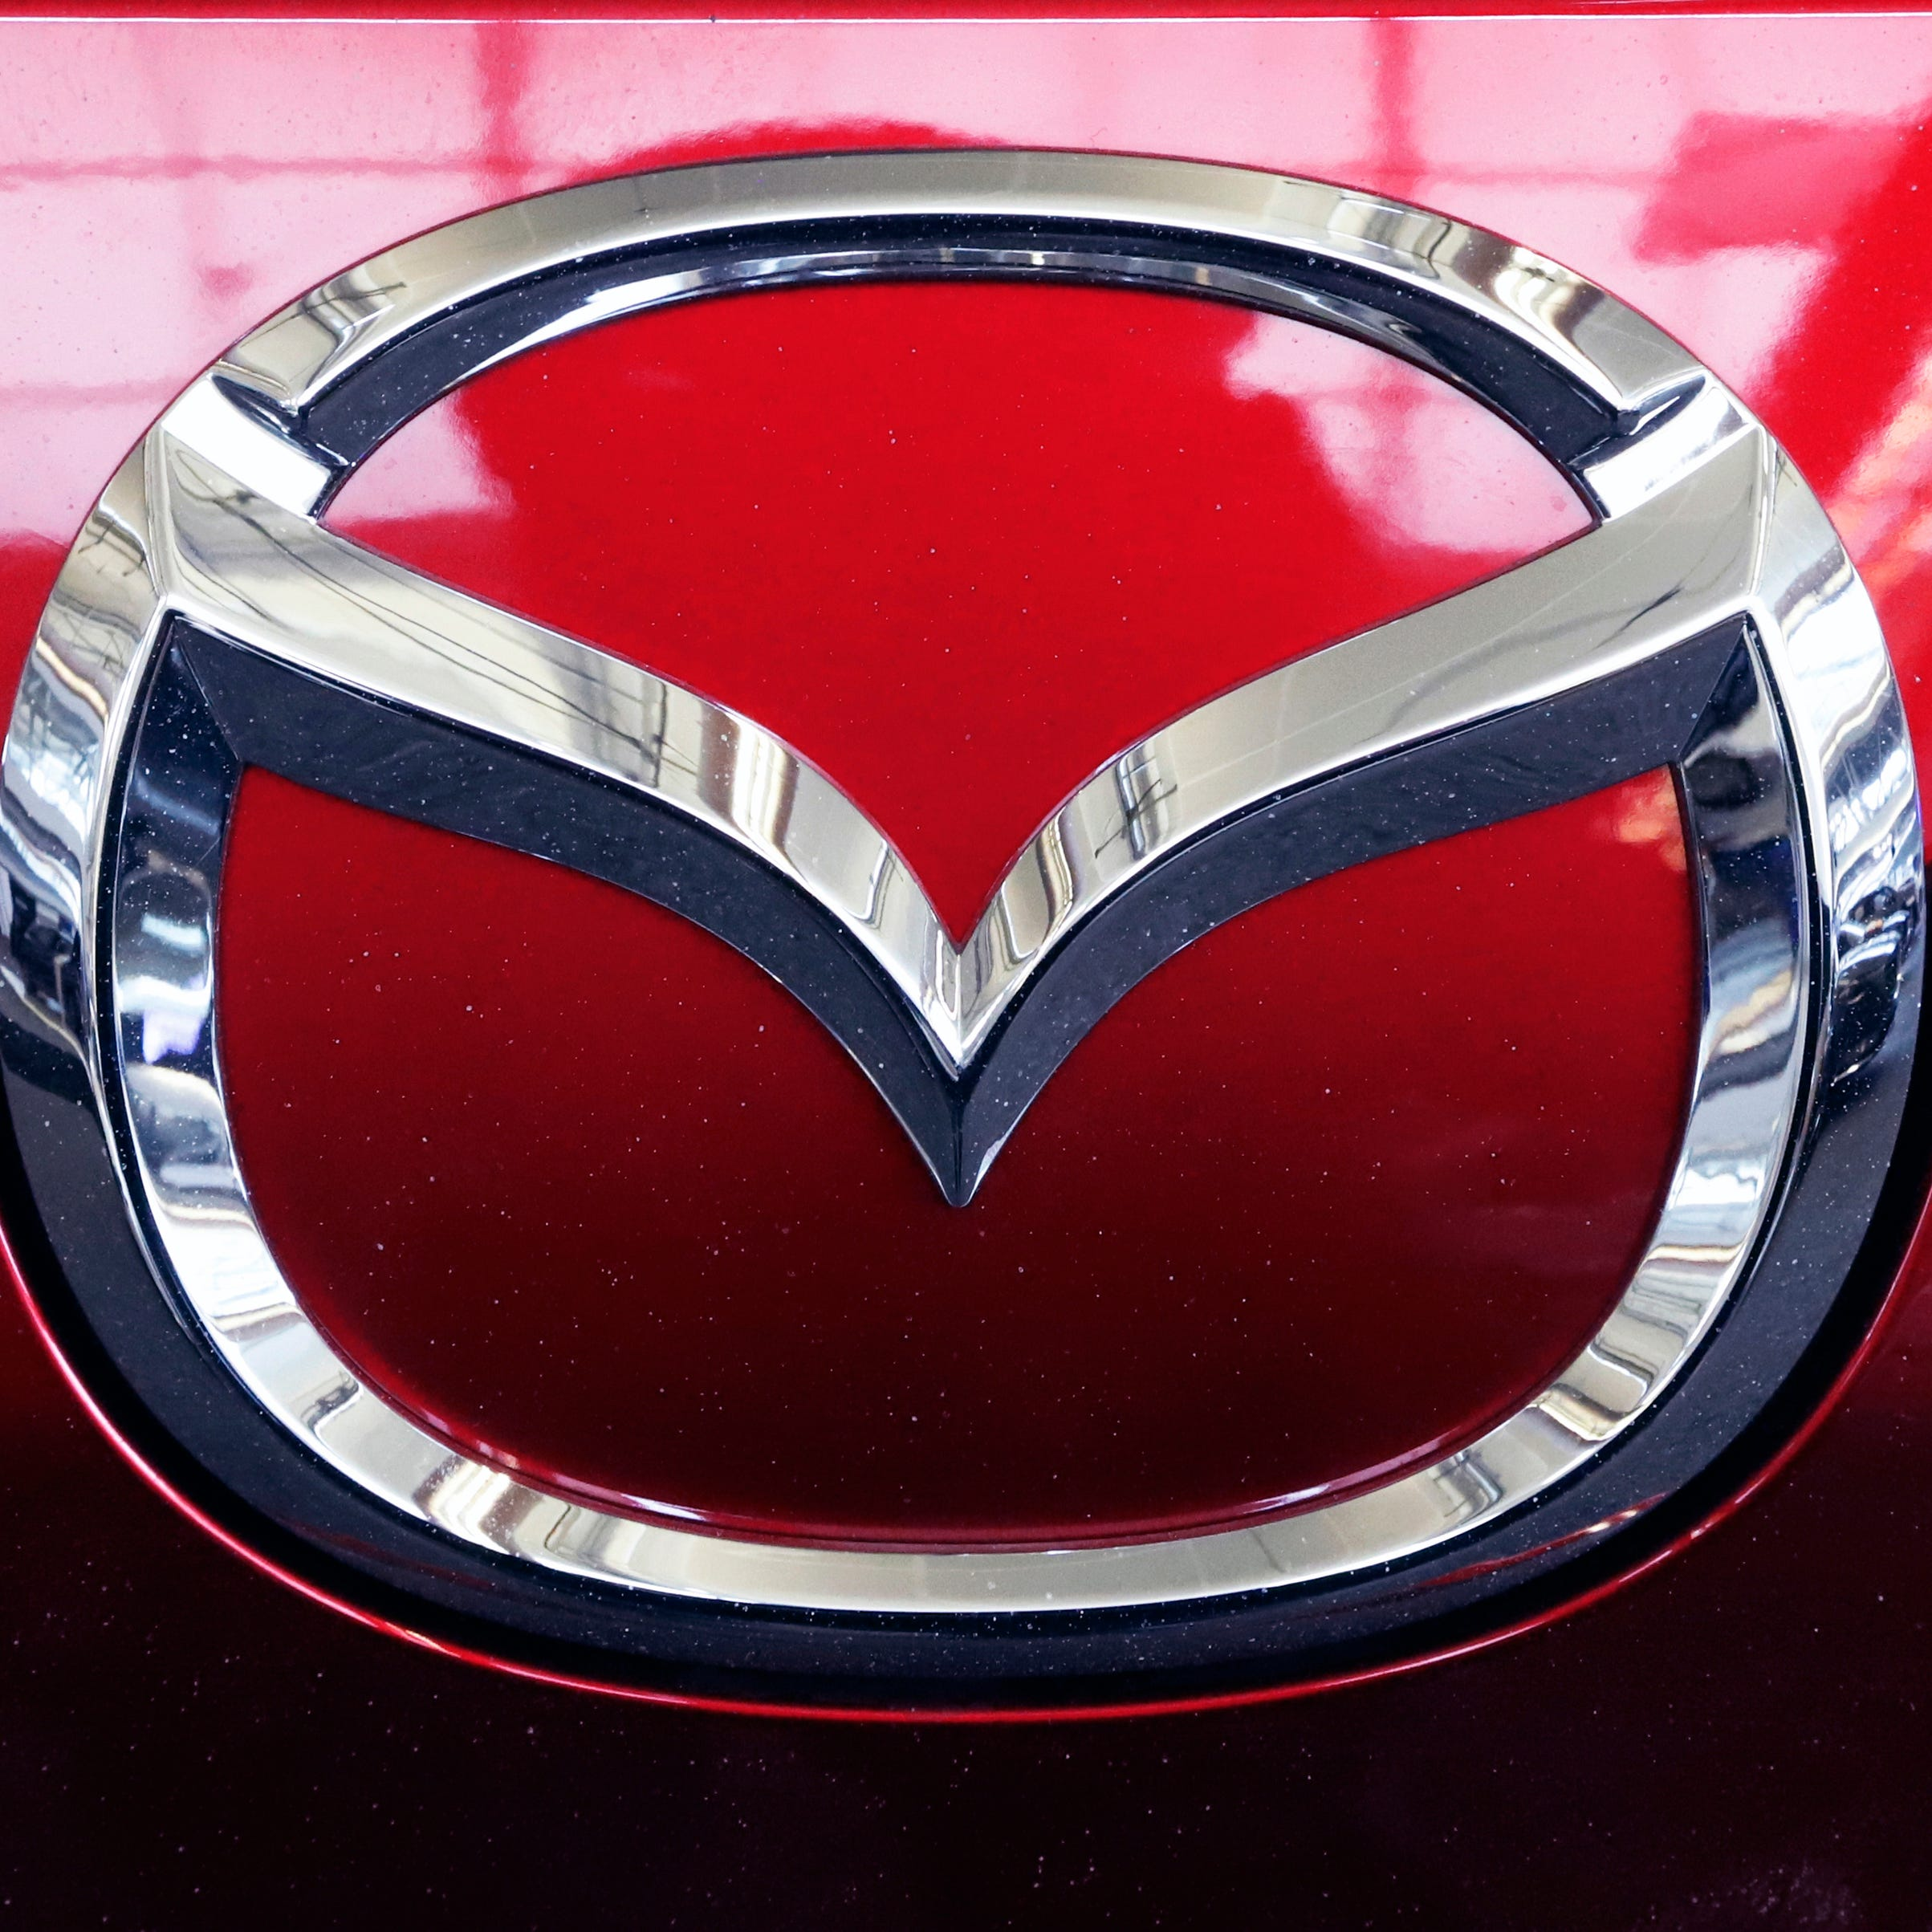 This Feb. 14, 2019, file photo shows the Mazda logo at the 2019 Pittsburgh International Auto Show in Pittsburgh.